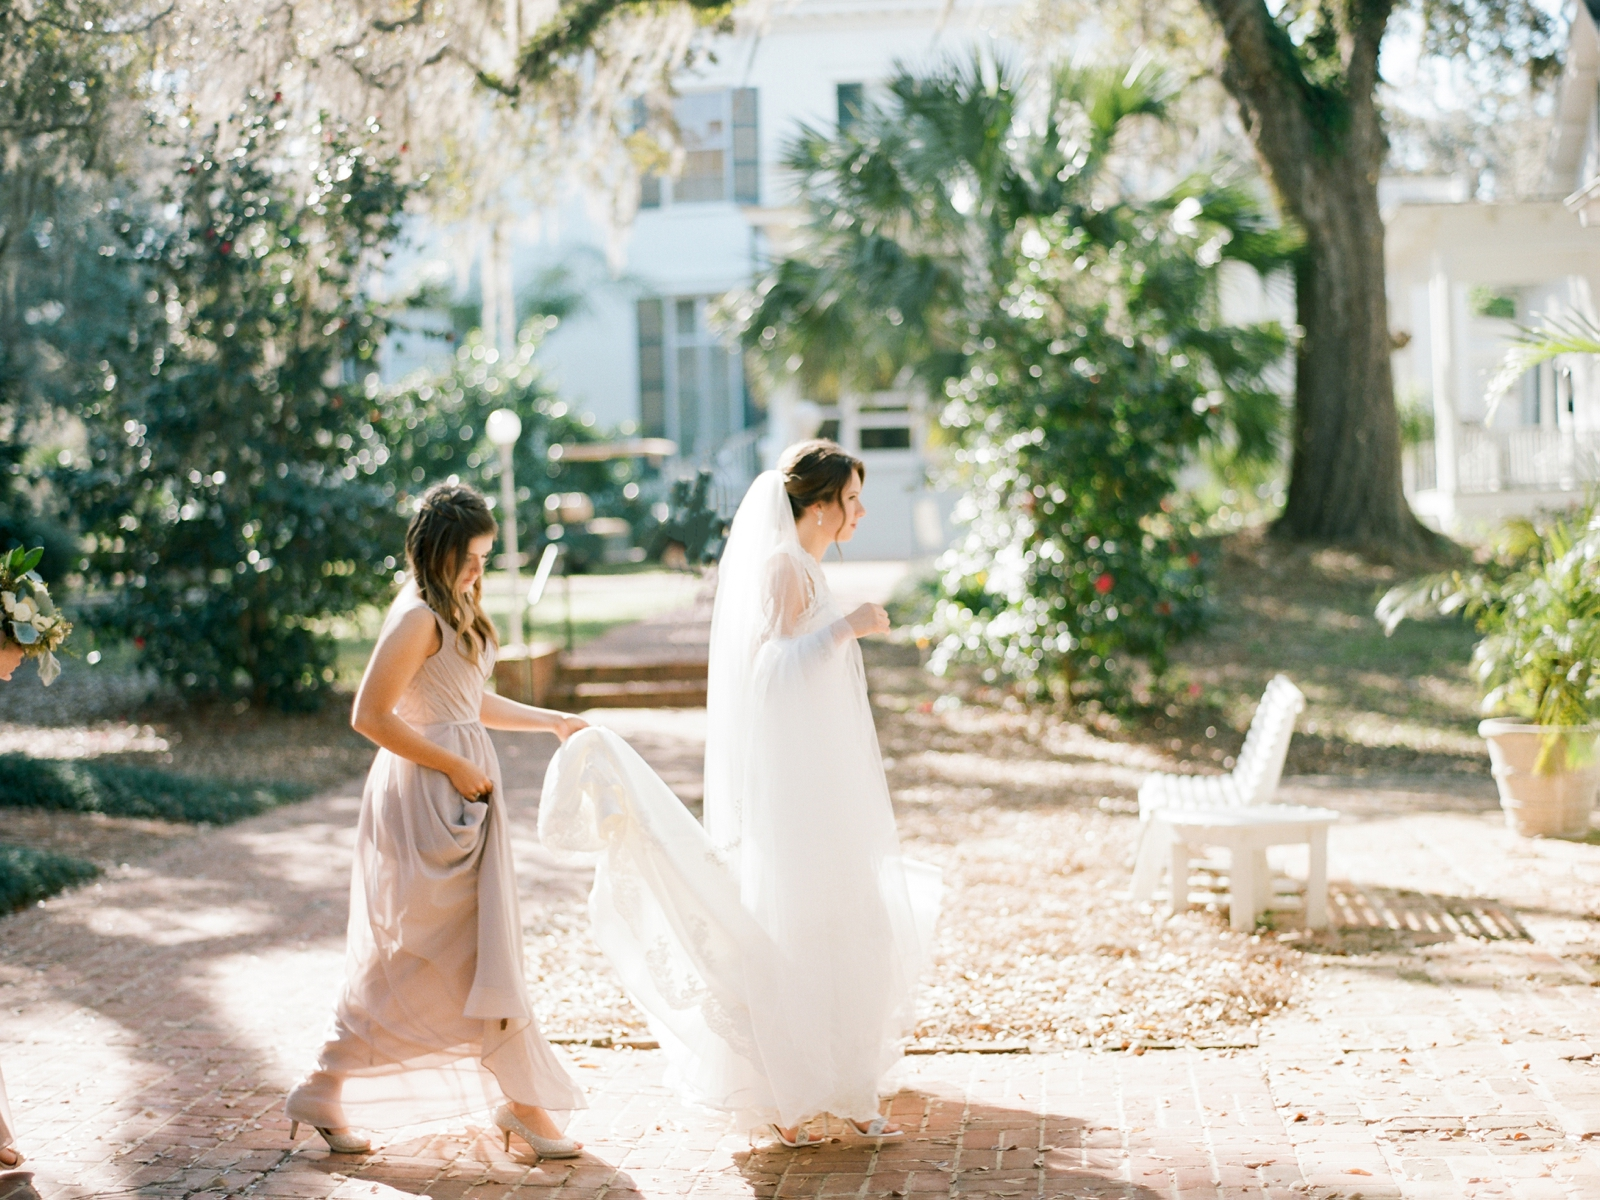 goodwood museum tallahassee wedding photographer - tallahassee florida - shannon griffin_0011.jpg